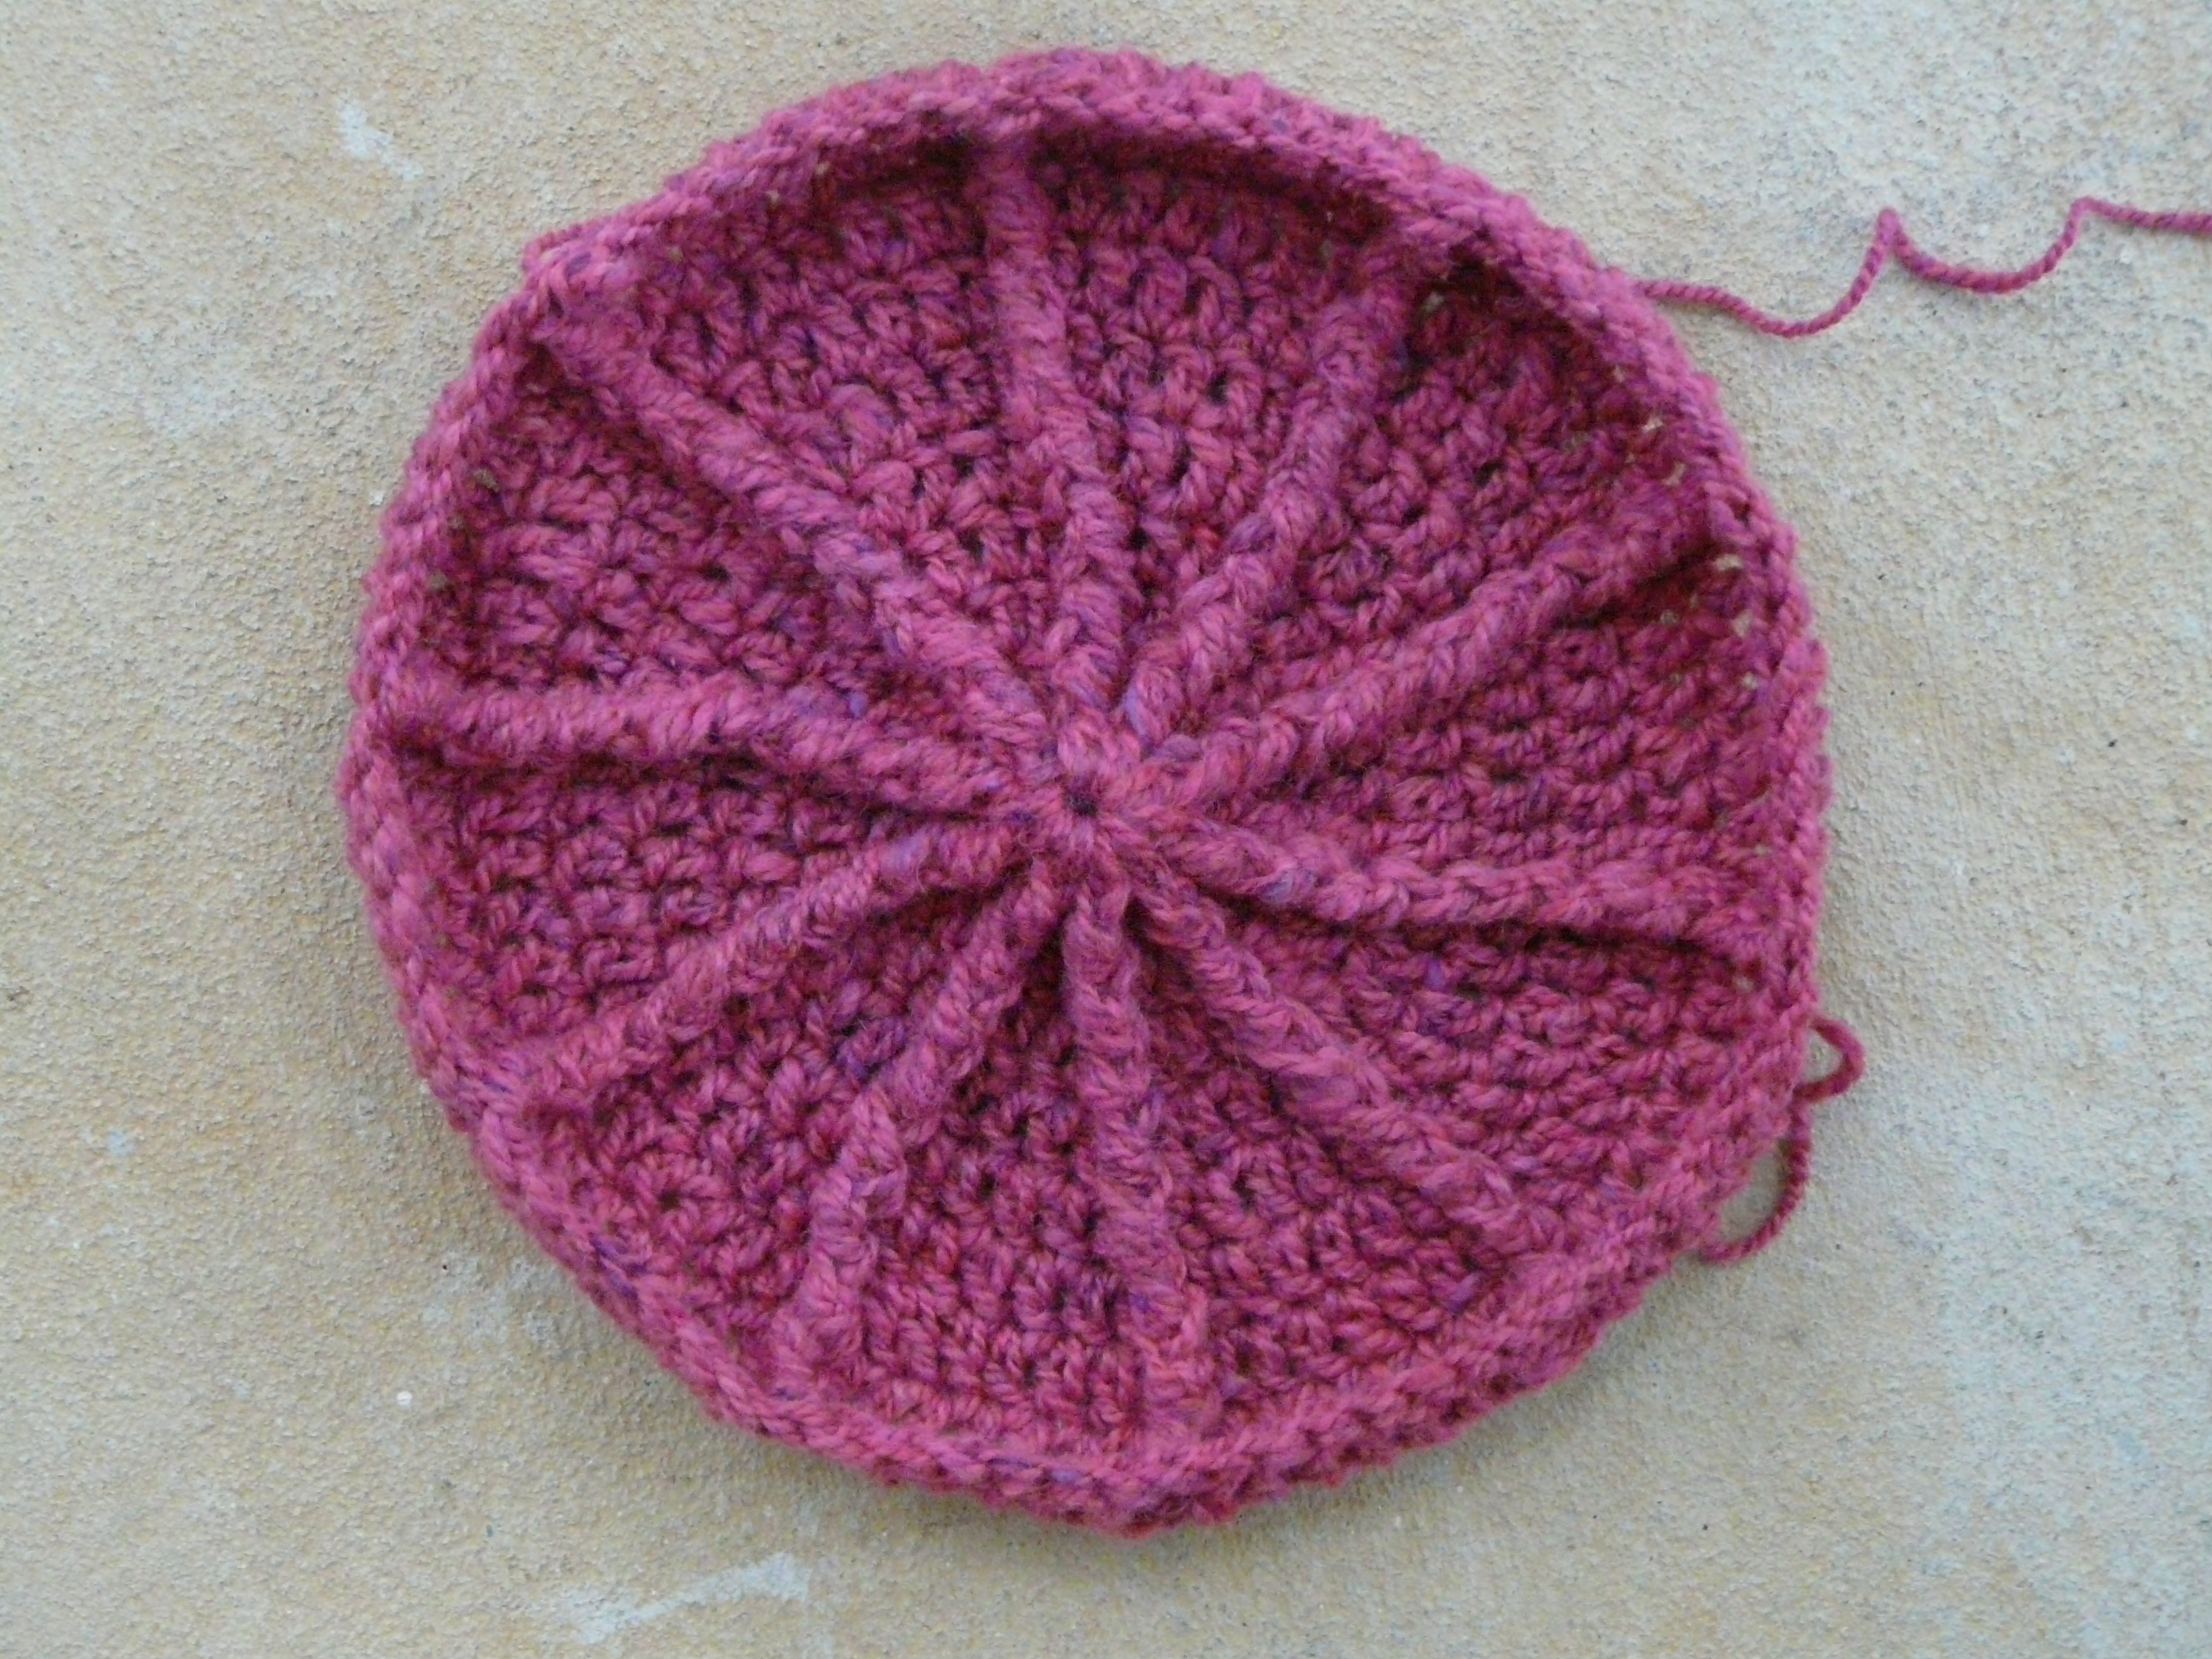 Crocheted Newsboy Cap Pattern - Allcrafts Blogs